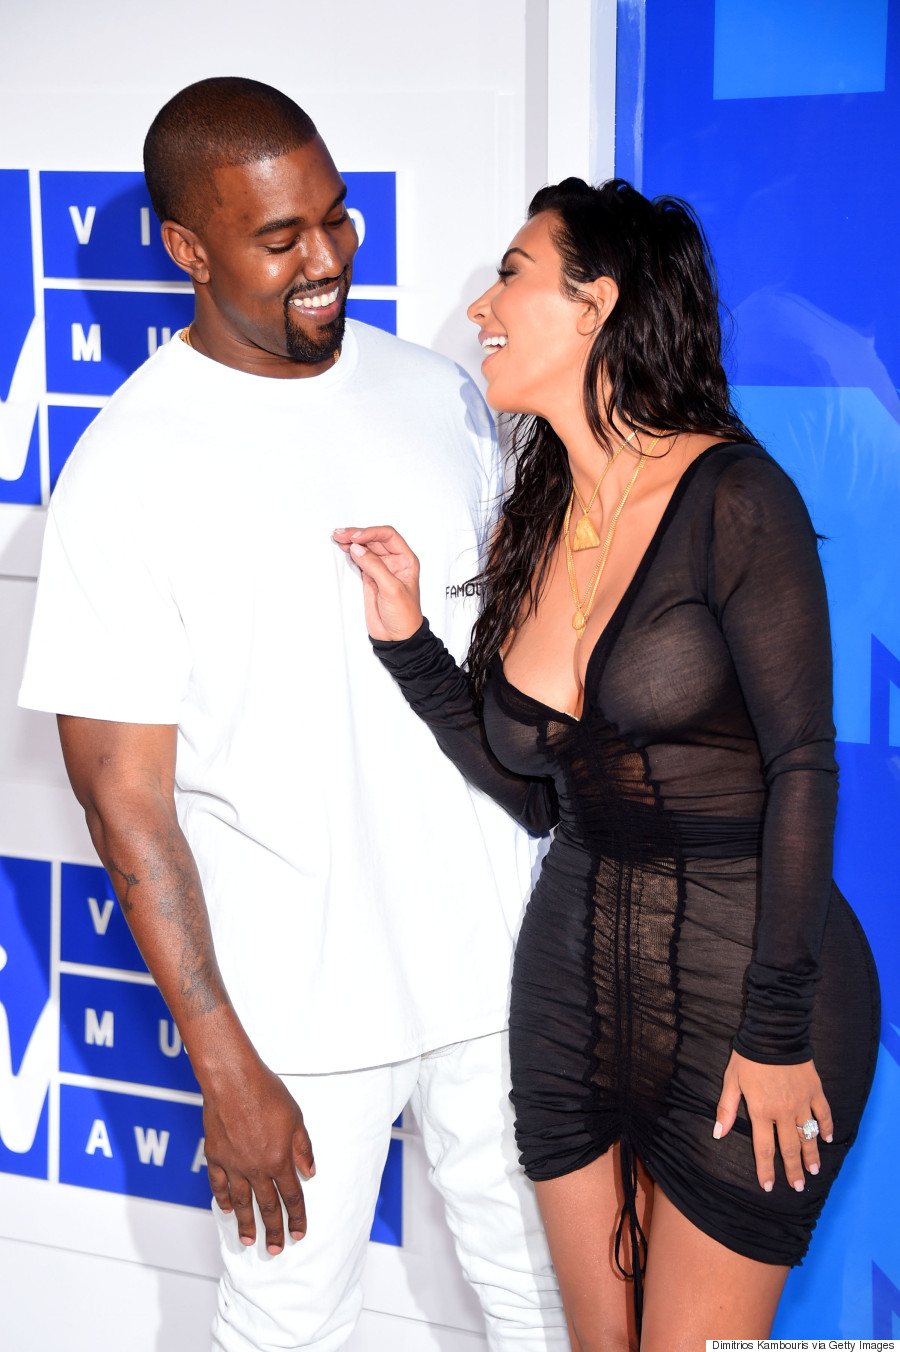 NEW YORK, NY - AUGUST 28: Kanye West (L) and Kim Kardashian attend the 2016 MTV Video Music Awards at Madison Square Garden on August 28, 2016 in New York City. (Photo by Dimitrios Kambouris/WireImage)